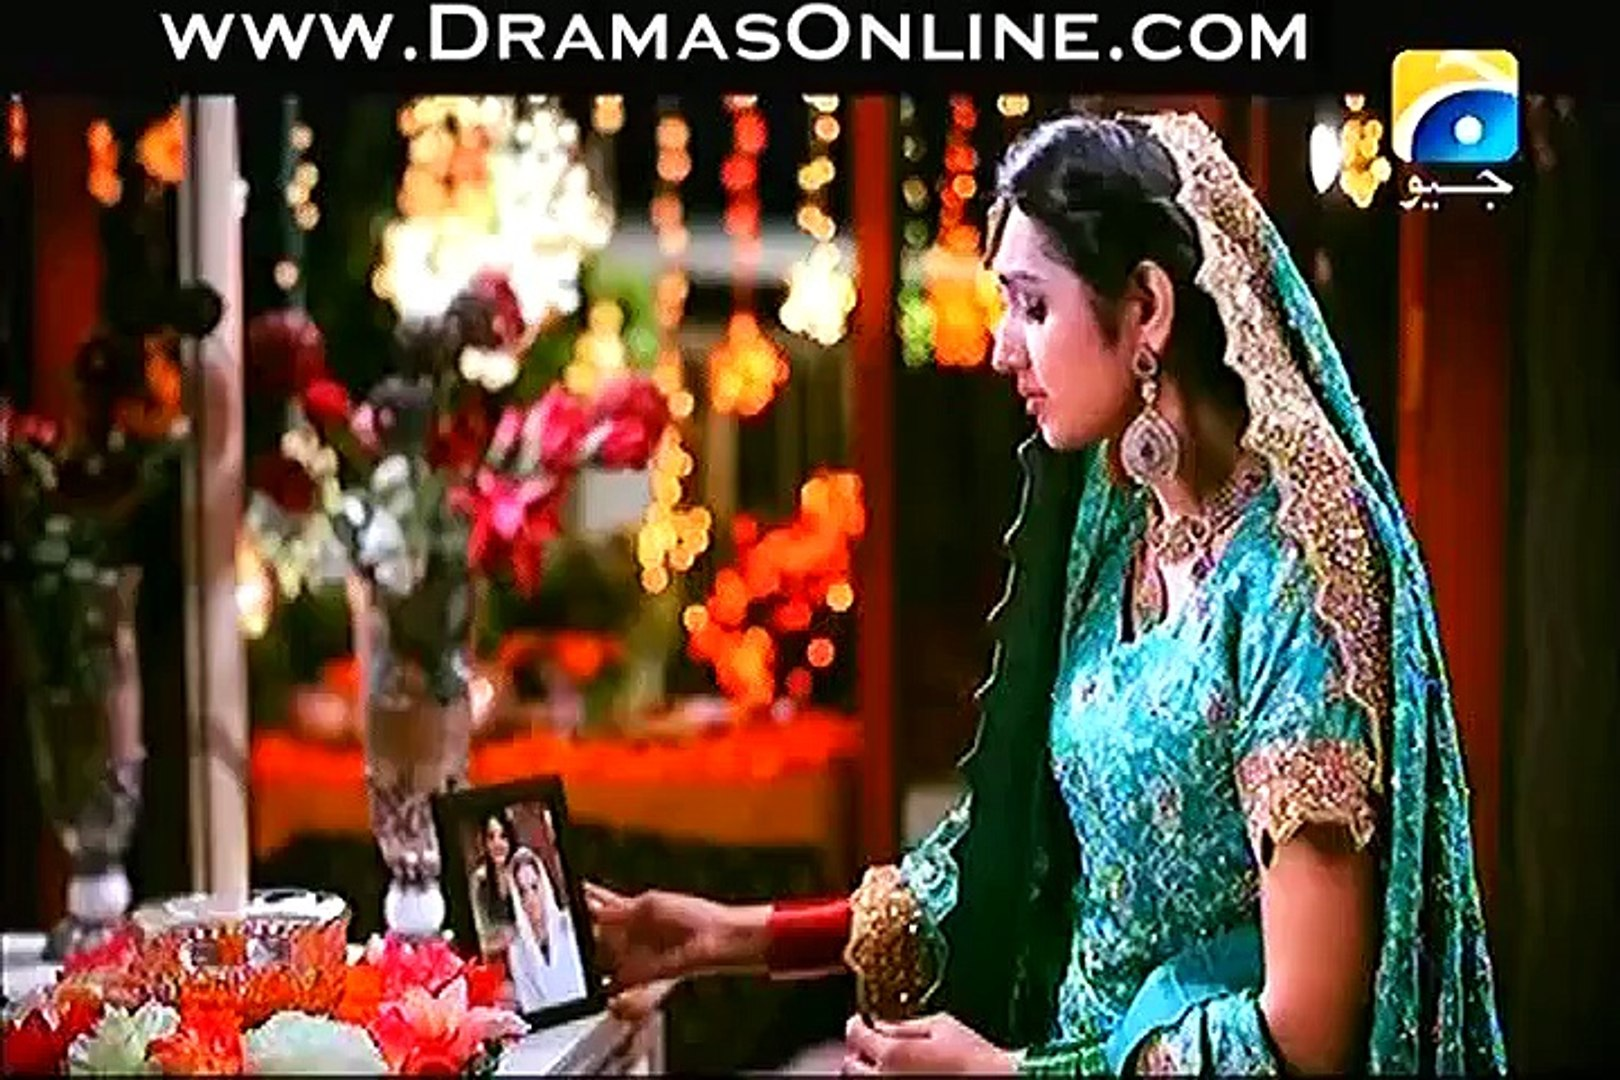 Yeh Zindagi Hai By GEO Episode 237 (2 Hour Special) Complete HD Quality On Youtube